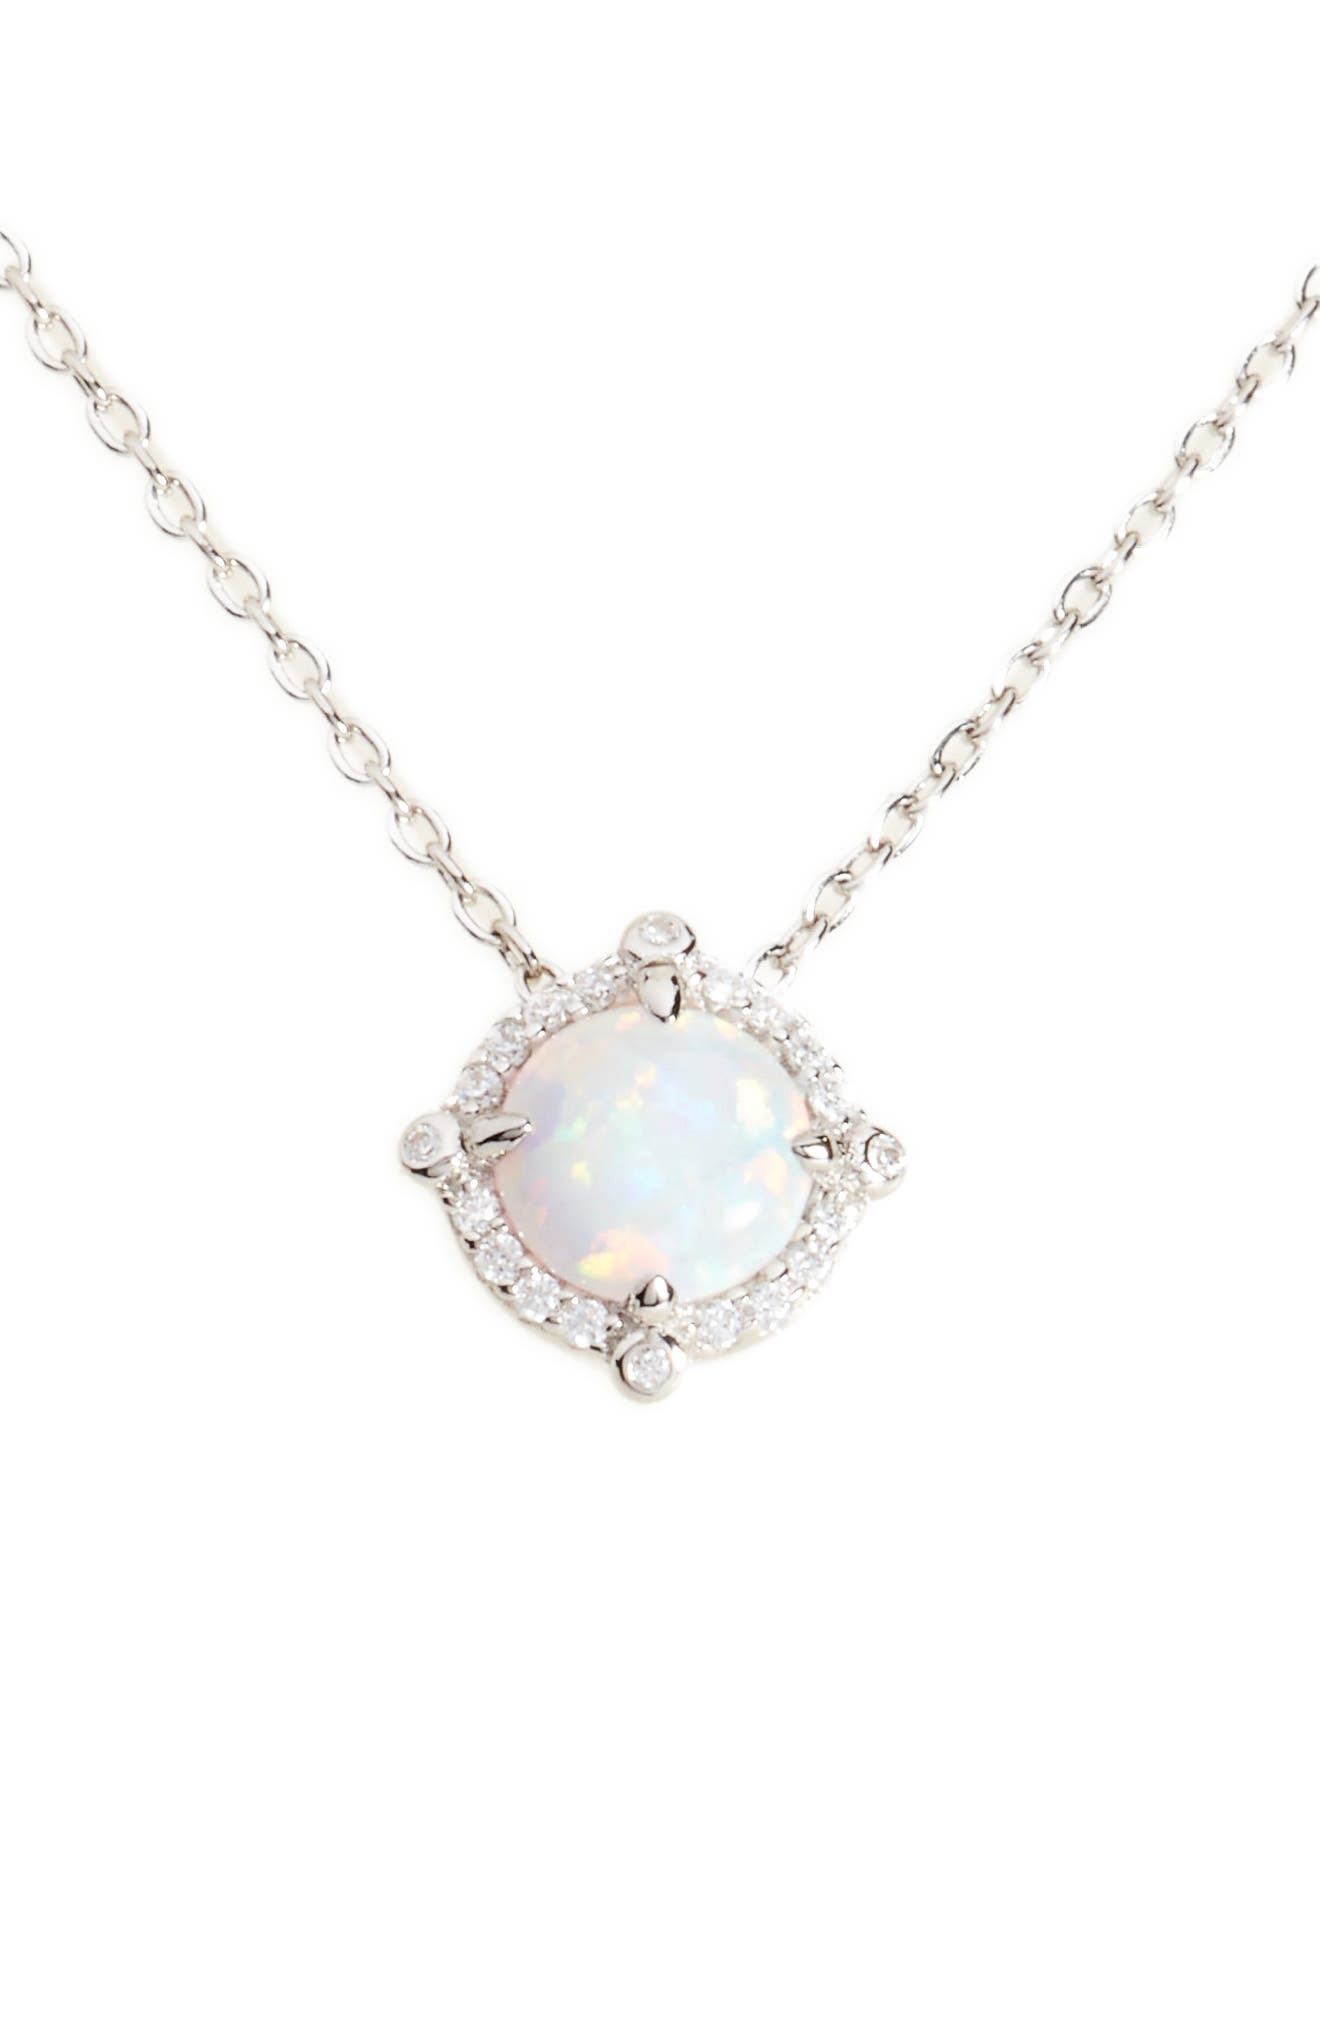 Simulated Diamond & Opal Necklace,                             Main thumbnail 1, color,                             SILVER/ OPAL/ CLEAR